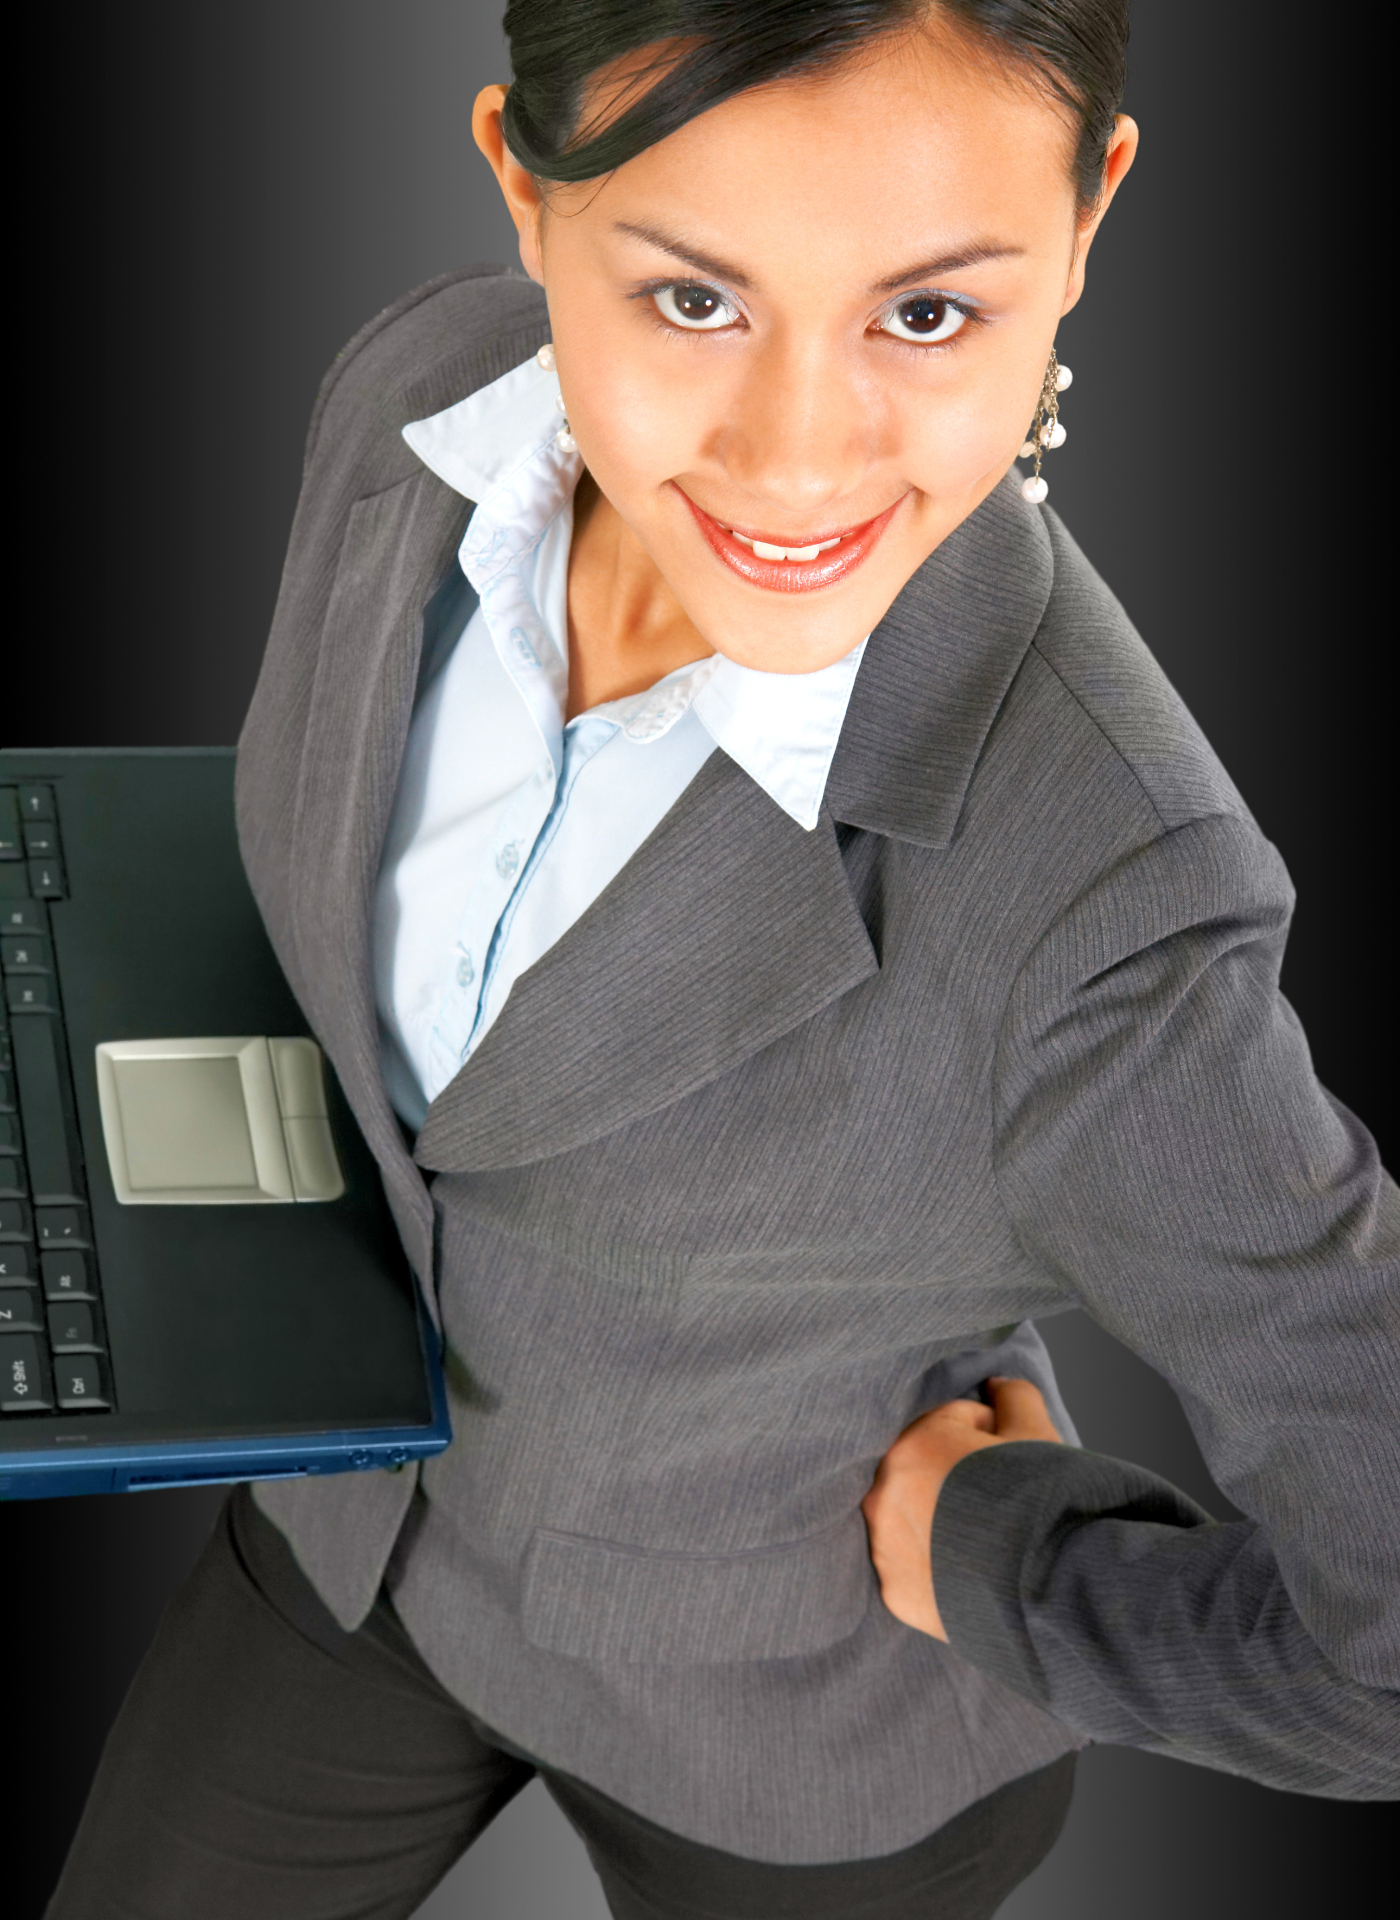 successful-business-woman-using-a-notebook-computer_GyHCT4wd